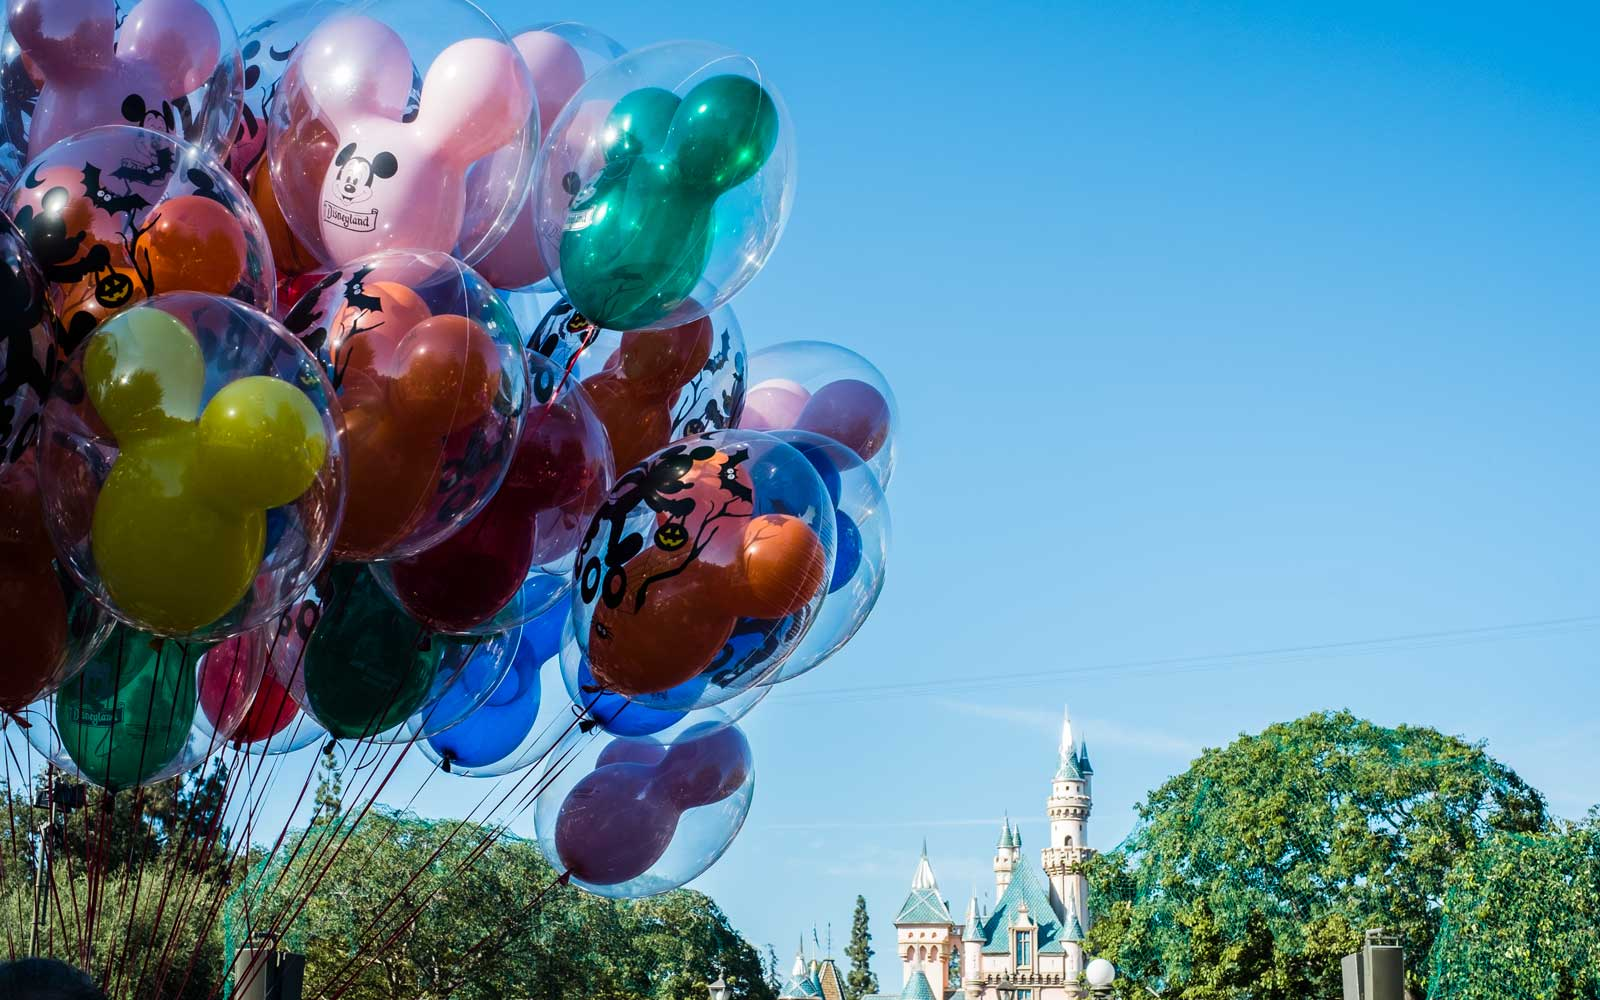 Disneyland's New Halloween Bash Will Bring 'Treat Trails' Where Even Adults Can Score Free Candy and Hang With Villains